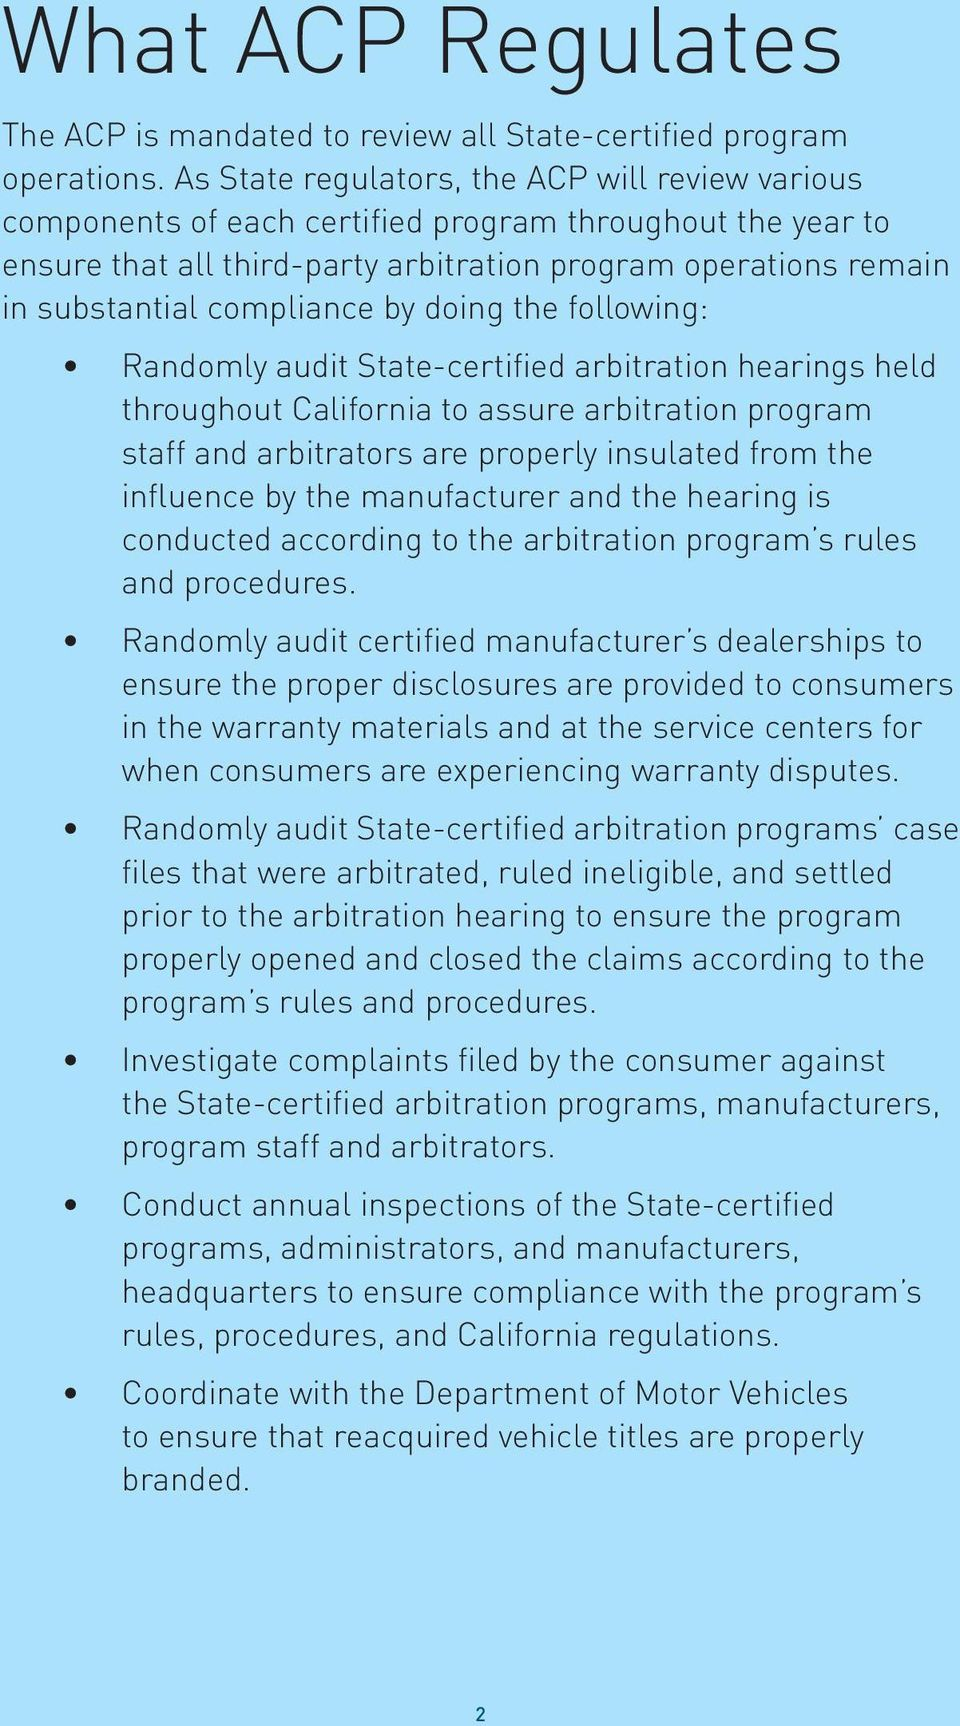 compliance by doing the following: Randomly audit State-certified arbitration hearings held throughout California to assure arbitration program staff and arbitrators are properly insulated from the